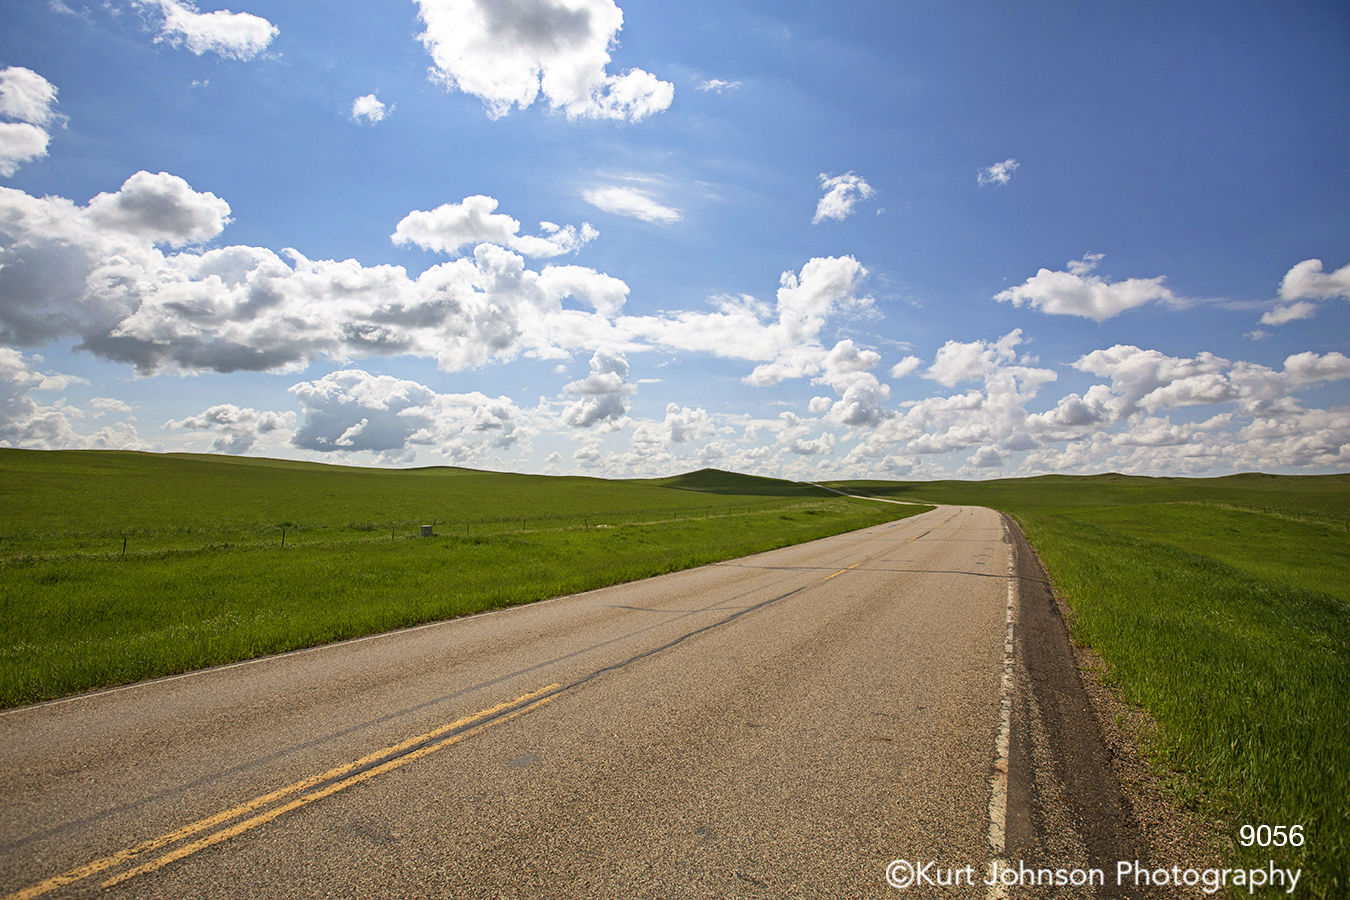 midwest road yellow lines path blue sky clouds green grass country landscape